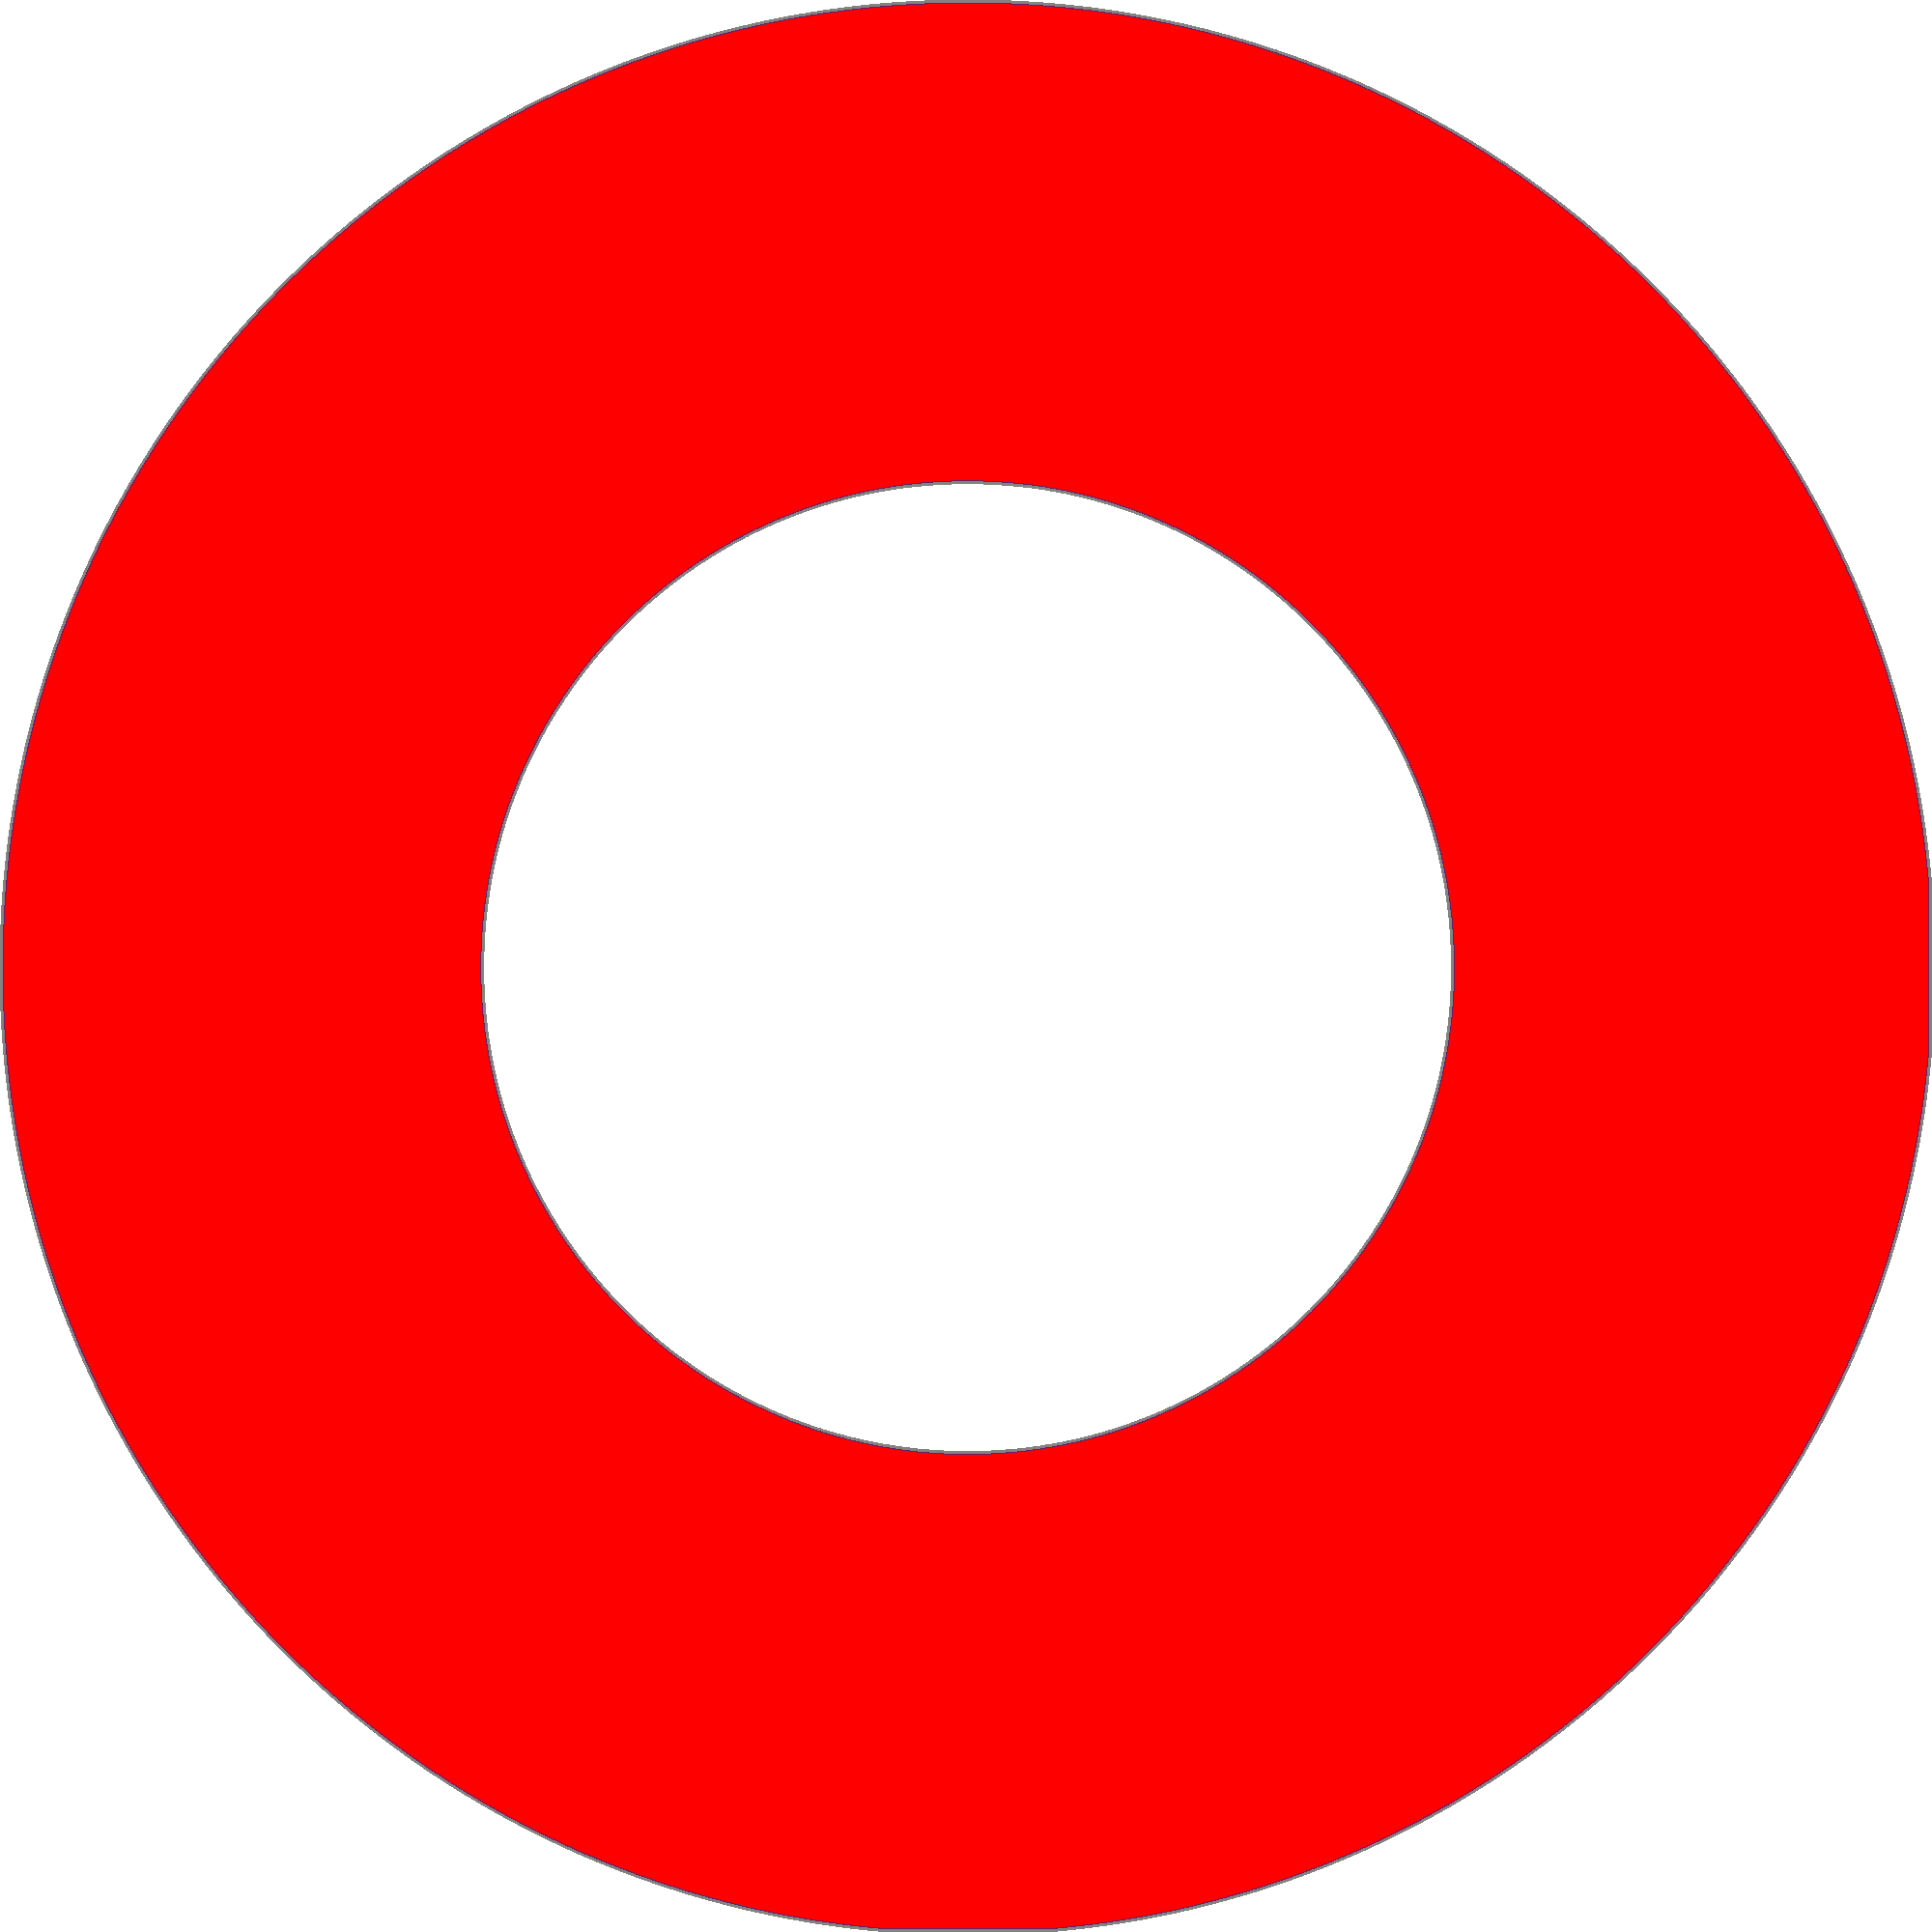 File:Red circle.png.